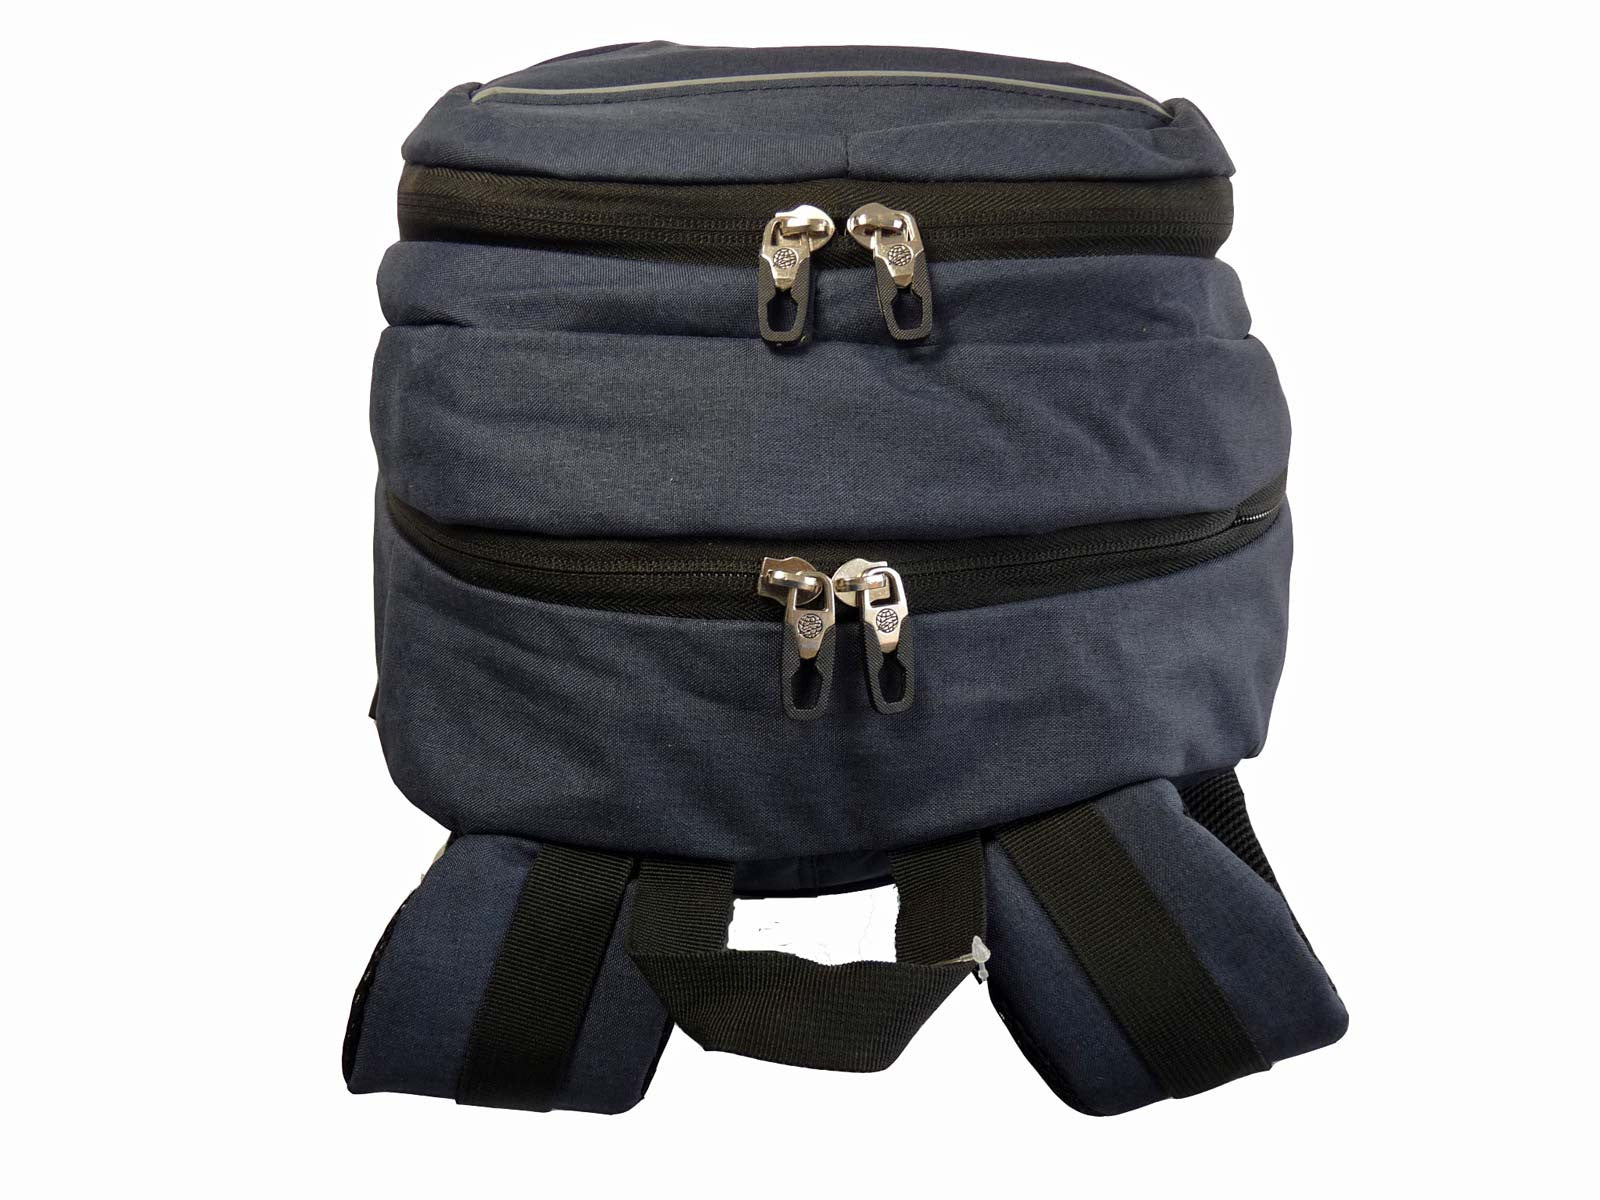 Laptop Macbook Backpack Rucksack Bag RL45N Top View